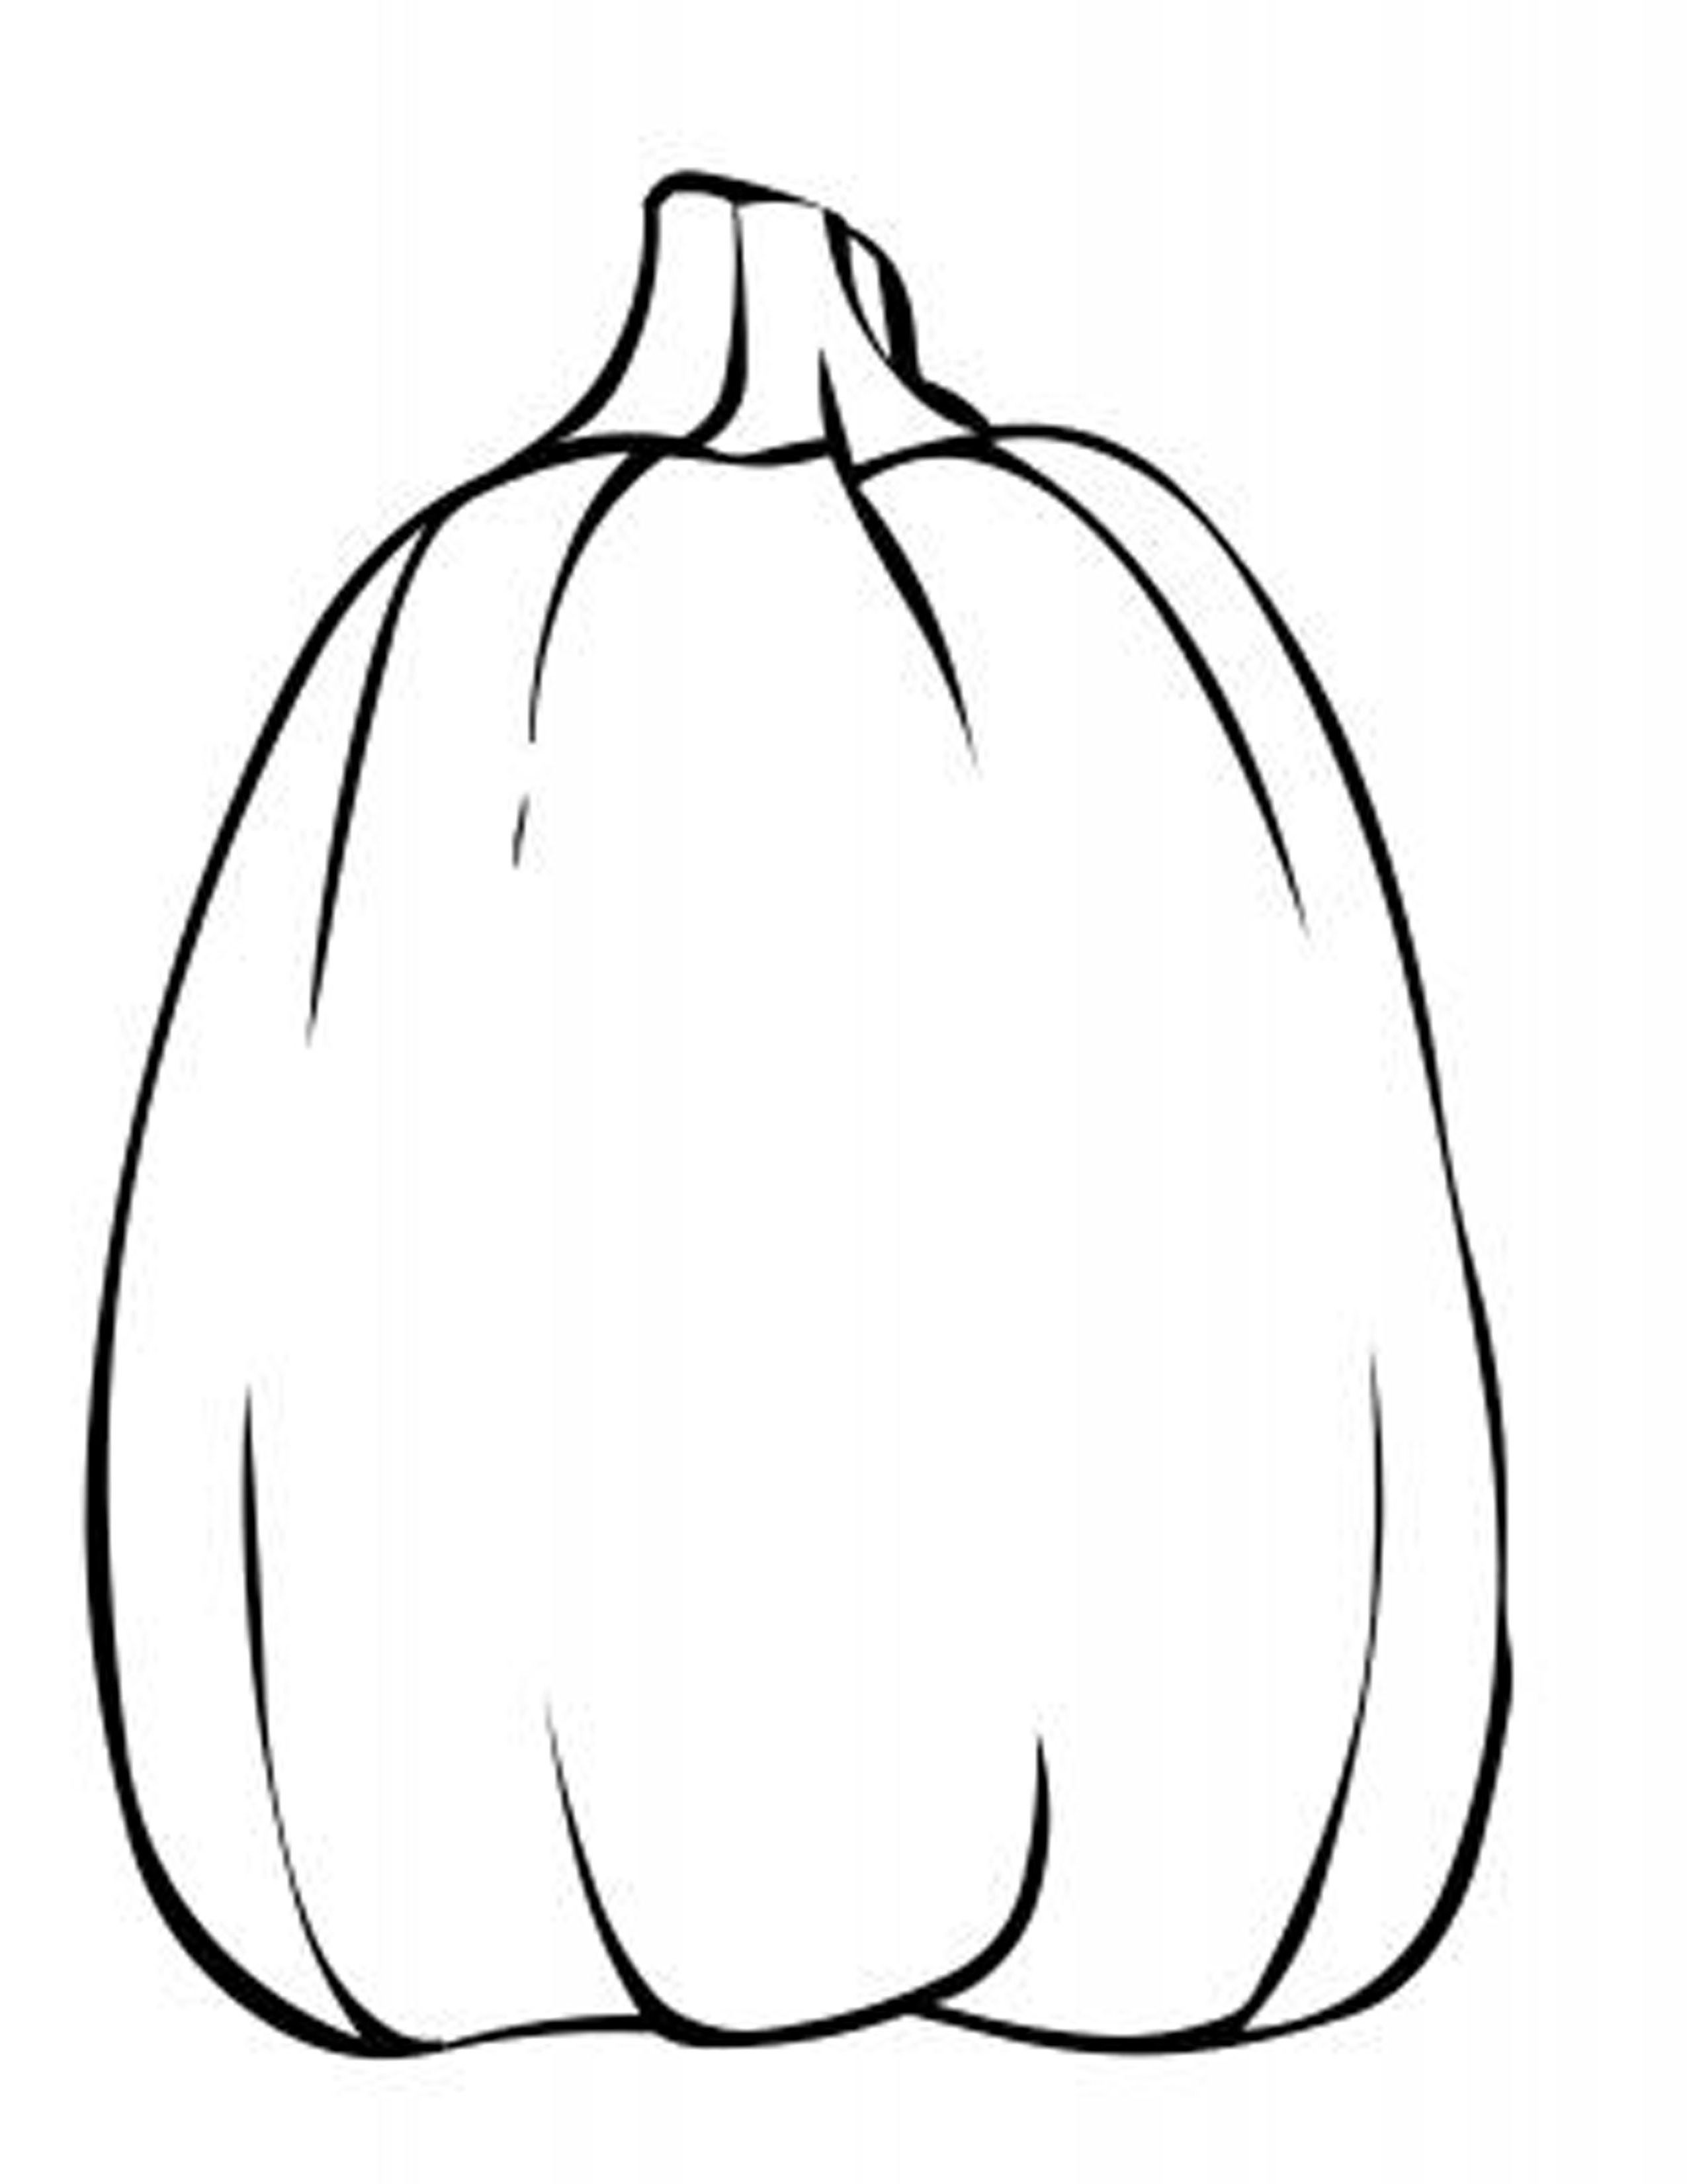 coloring pages pumpkins print pumpkins coloring pages to celebrate thanksgiving learn pumpkins print pages coloring